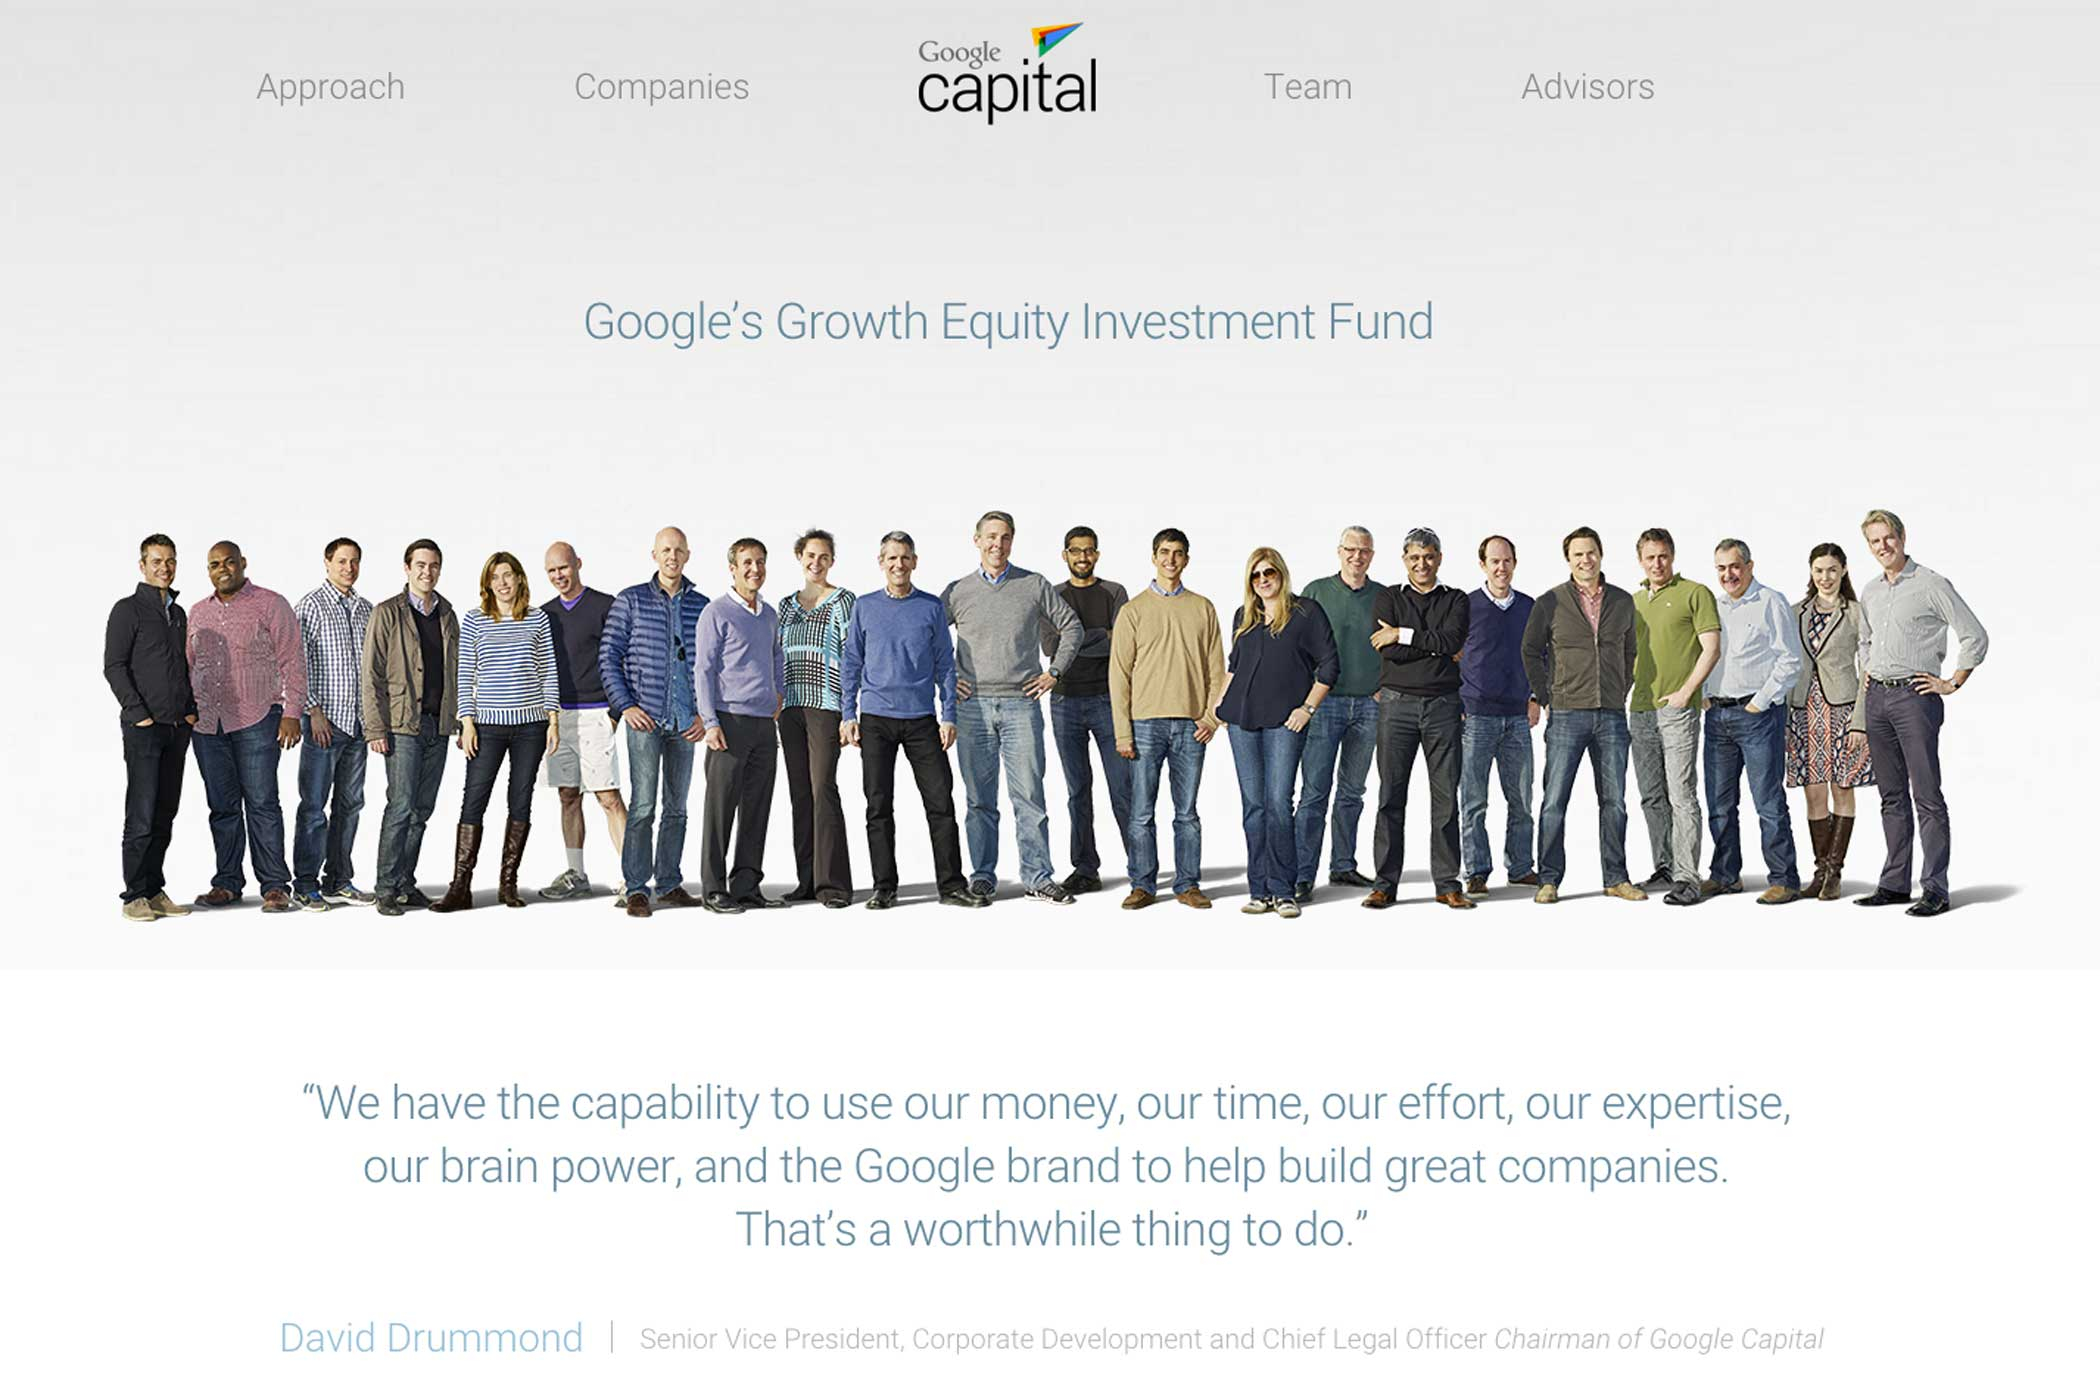 <b>Capital</b>: This investment arm focuses on late-state growth companies, and like Google Ventures, operates independently of Google's consumer-product businesses.